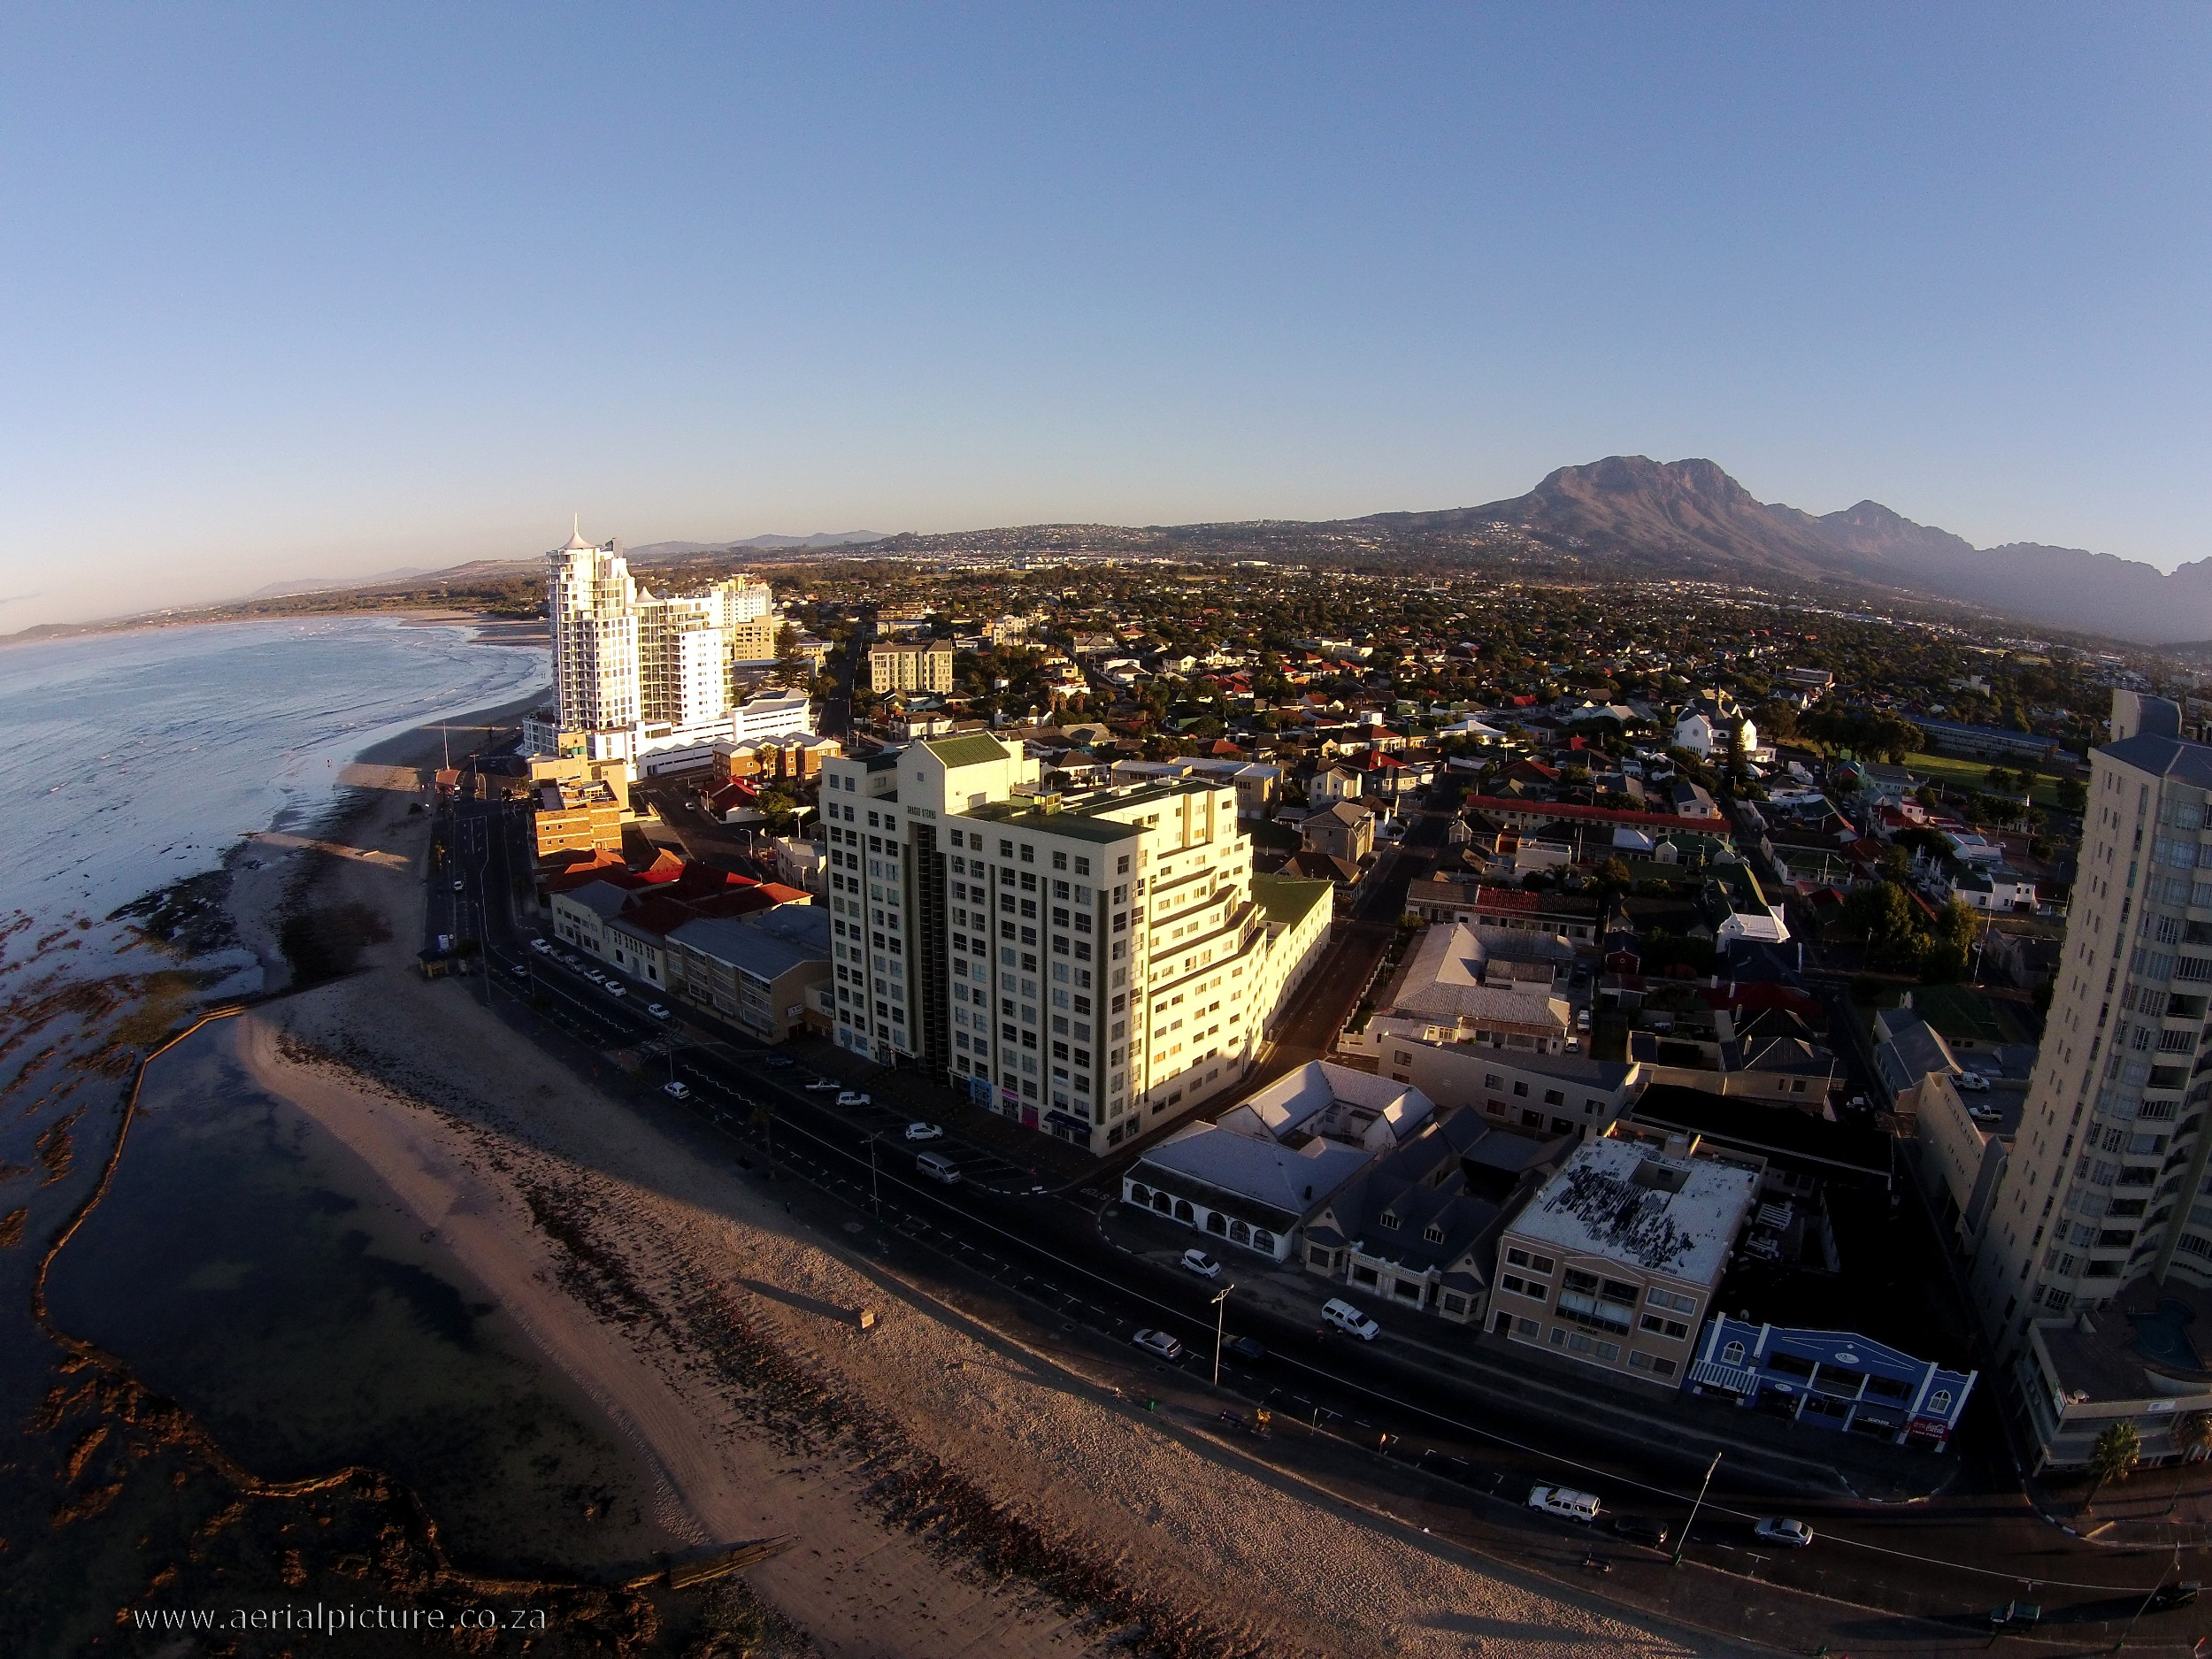 Strand Beachfront, South Africa